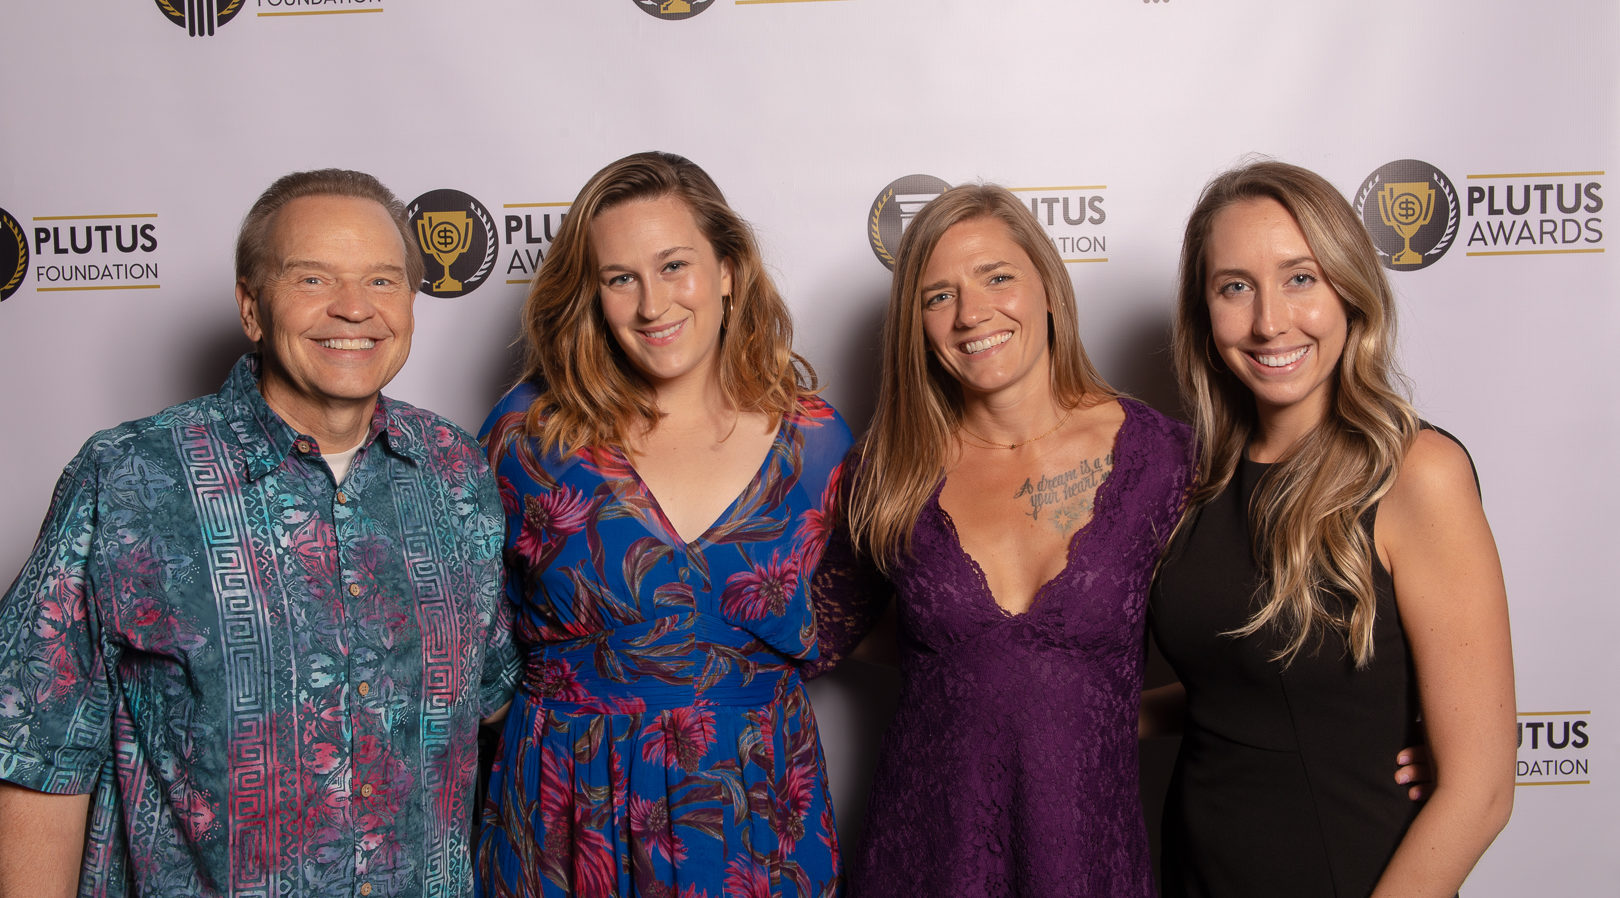 Announcing the Winners of the 11th Annual Plutus Awards